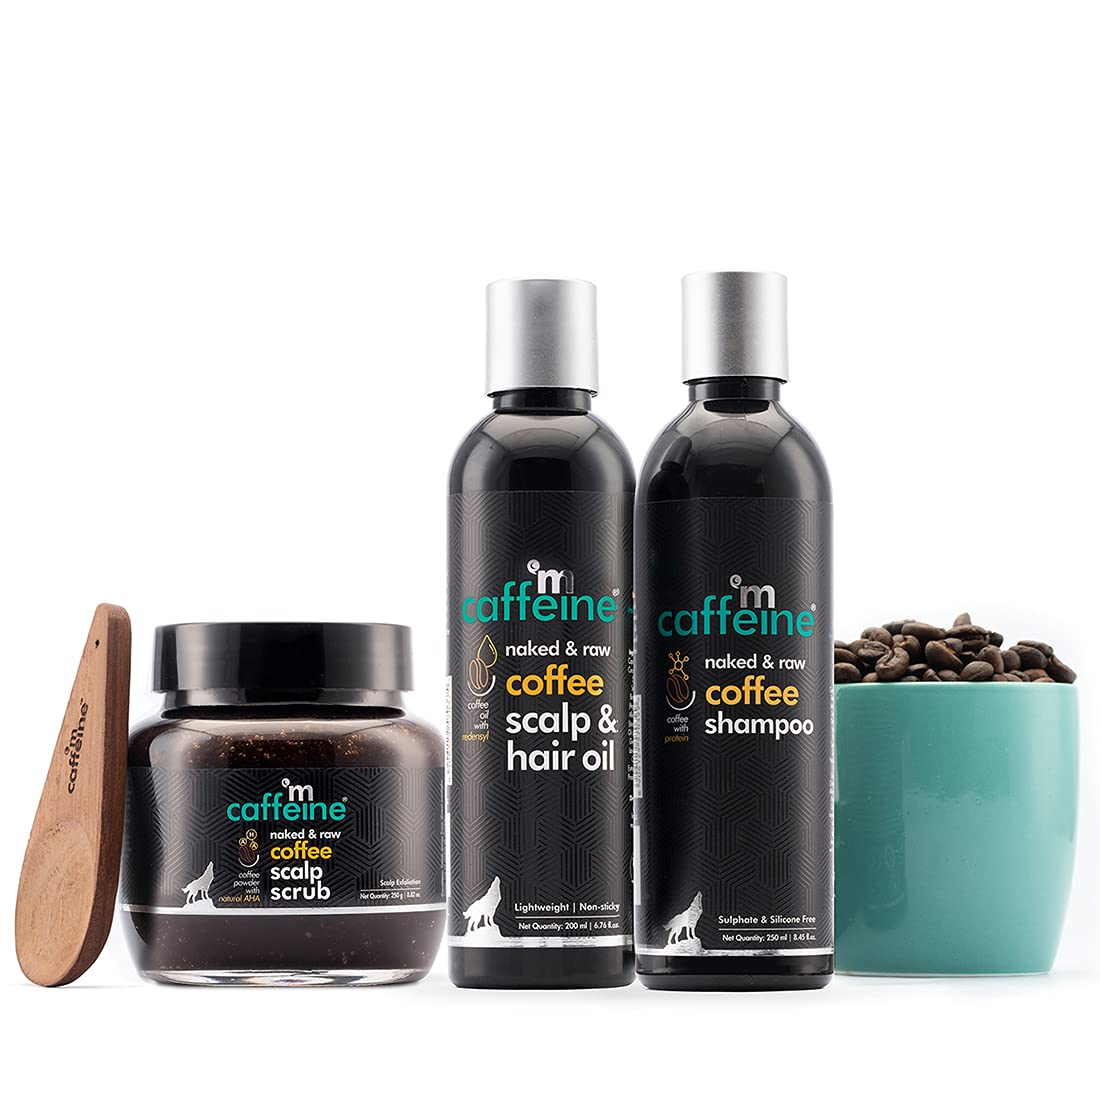 Girlistan - Wondering what are exfoliating scalp scrubs: and why use one?